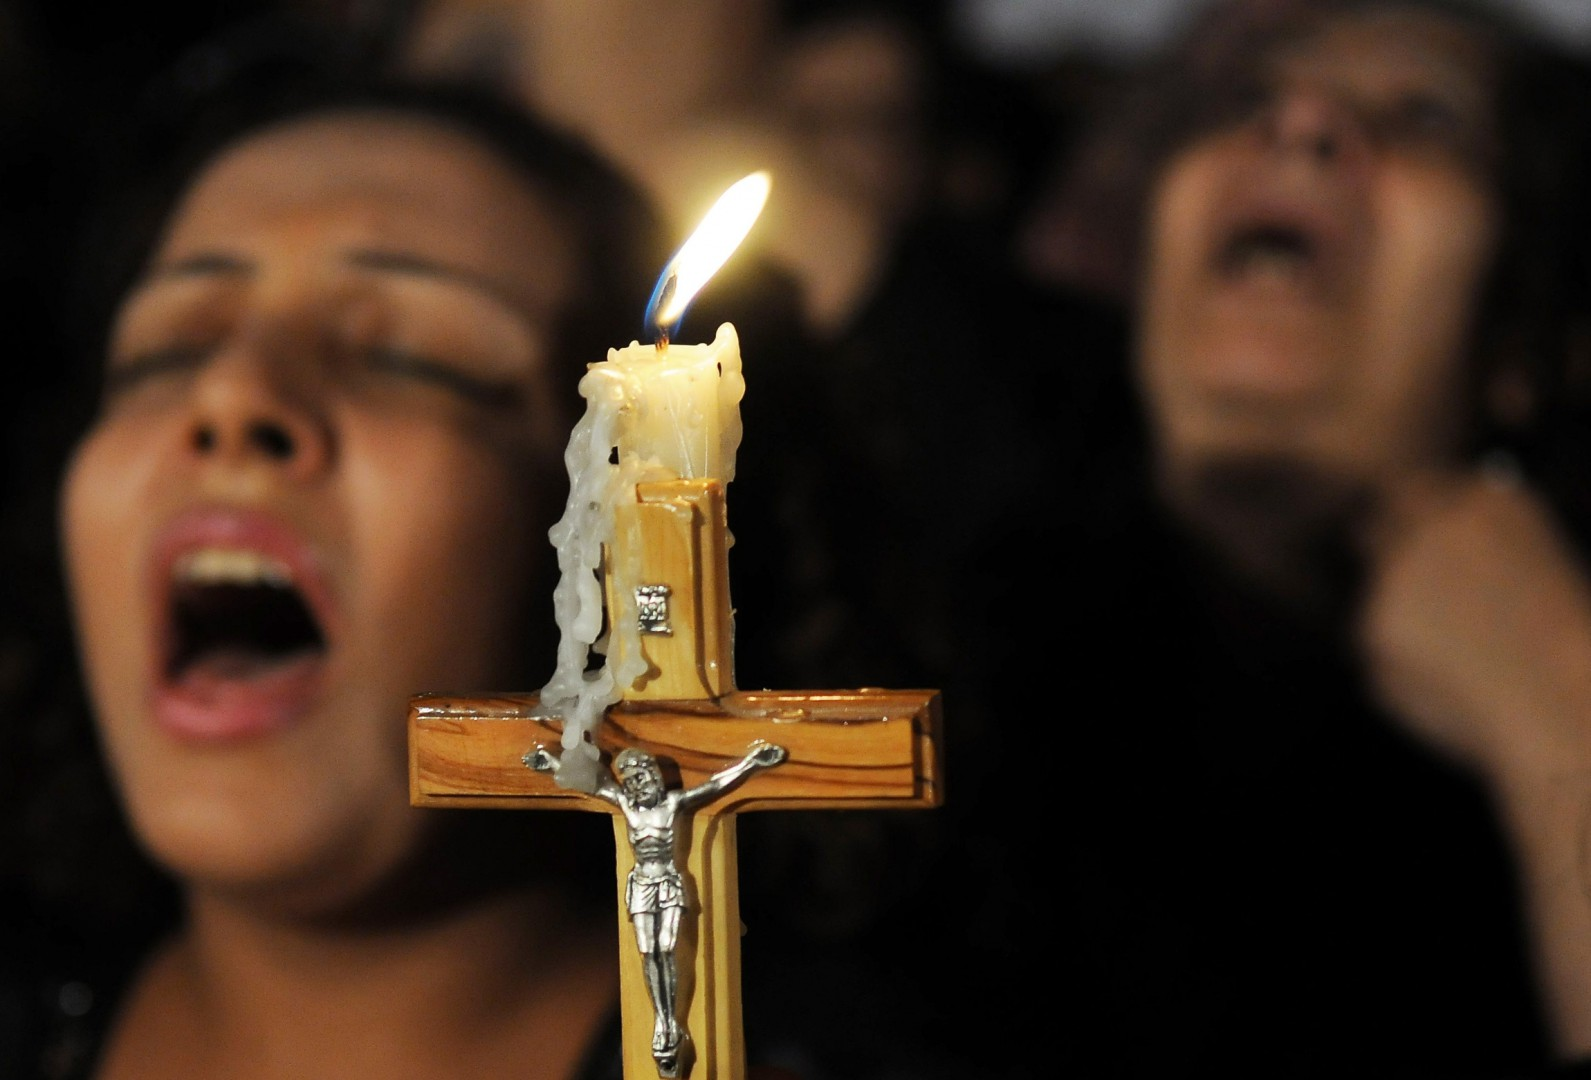 Coptic Christians carry a crucifix and chant prayers during a candlelight protest at Abassaiya Orthodox Cathedral in Cairo Oct. 16, one week after people were killed during clashes with soldiers and riot police. At least 26 people, mostly Christians, were killed Oct. 9 when troops broke up a peaceful protest against an earlier attack on a church in southern Egypt. (CNS photo/stringer via Reuters) (Oct. 18, 2011) See EGYPT-CHRISTIANS Oct. 10, 2011.